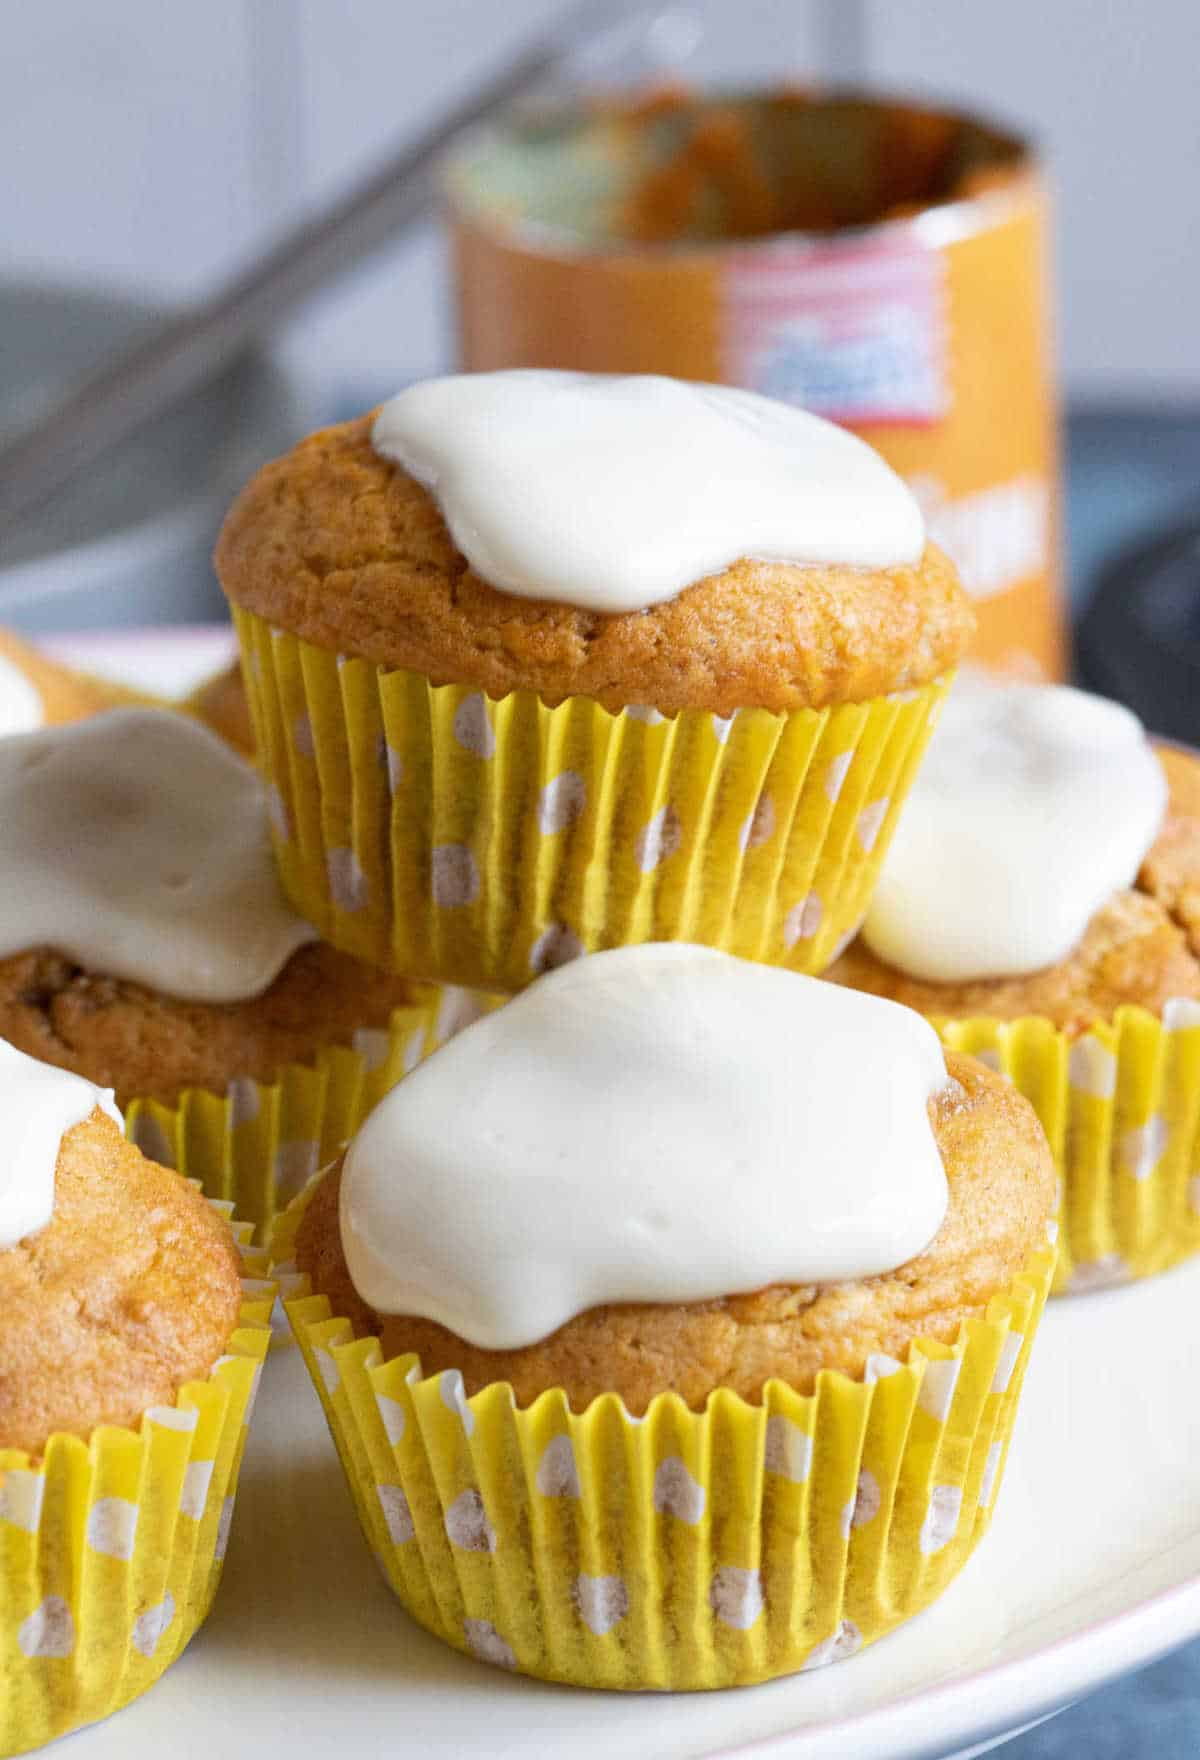 Spiced pumpkin muffins with cream cheese frosting on a cake stand.